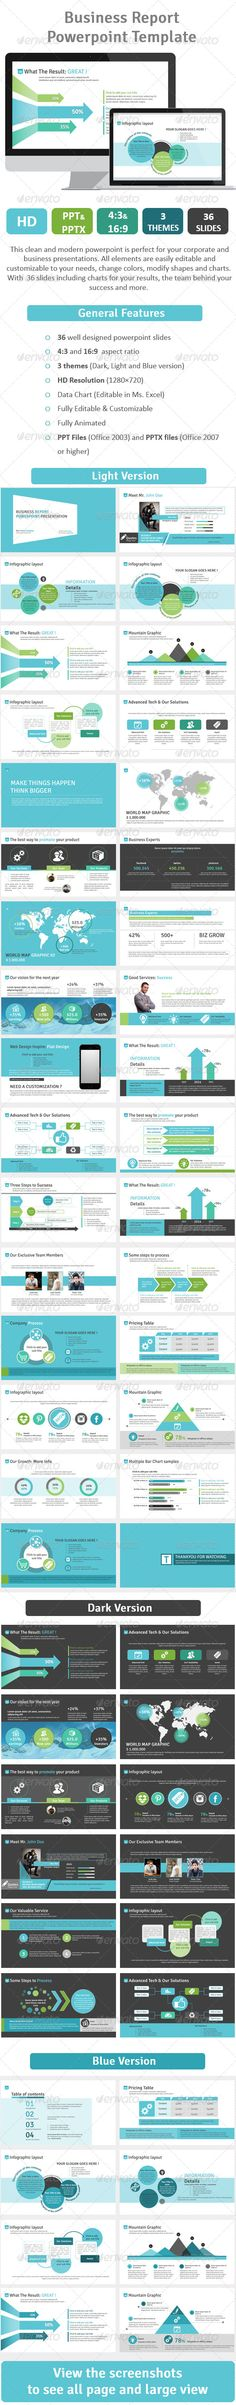 Business Report Powerpoint Template by buicuong Powerpoint Examples, Cool Powerpoint, Powerpoint Charts, Ppt Design, Slide Design, Layout Design, Presentation Layout, Business Presentation, Presentation Templates